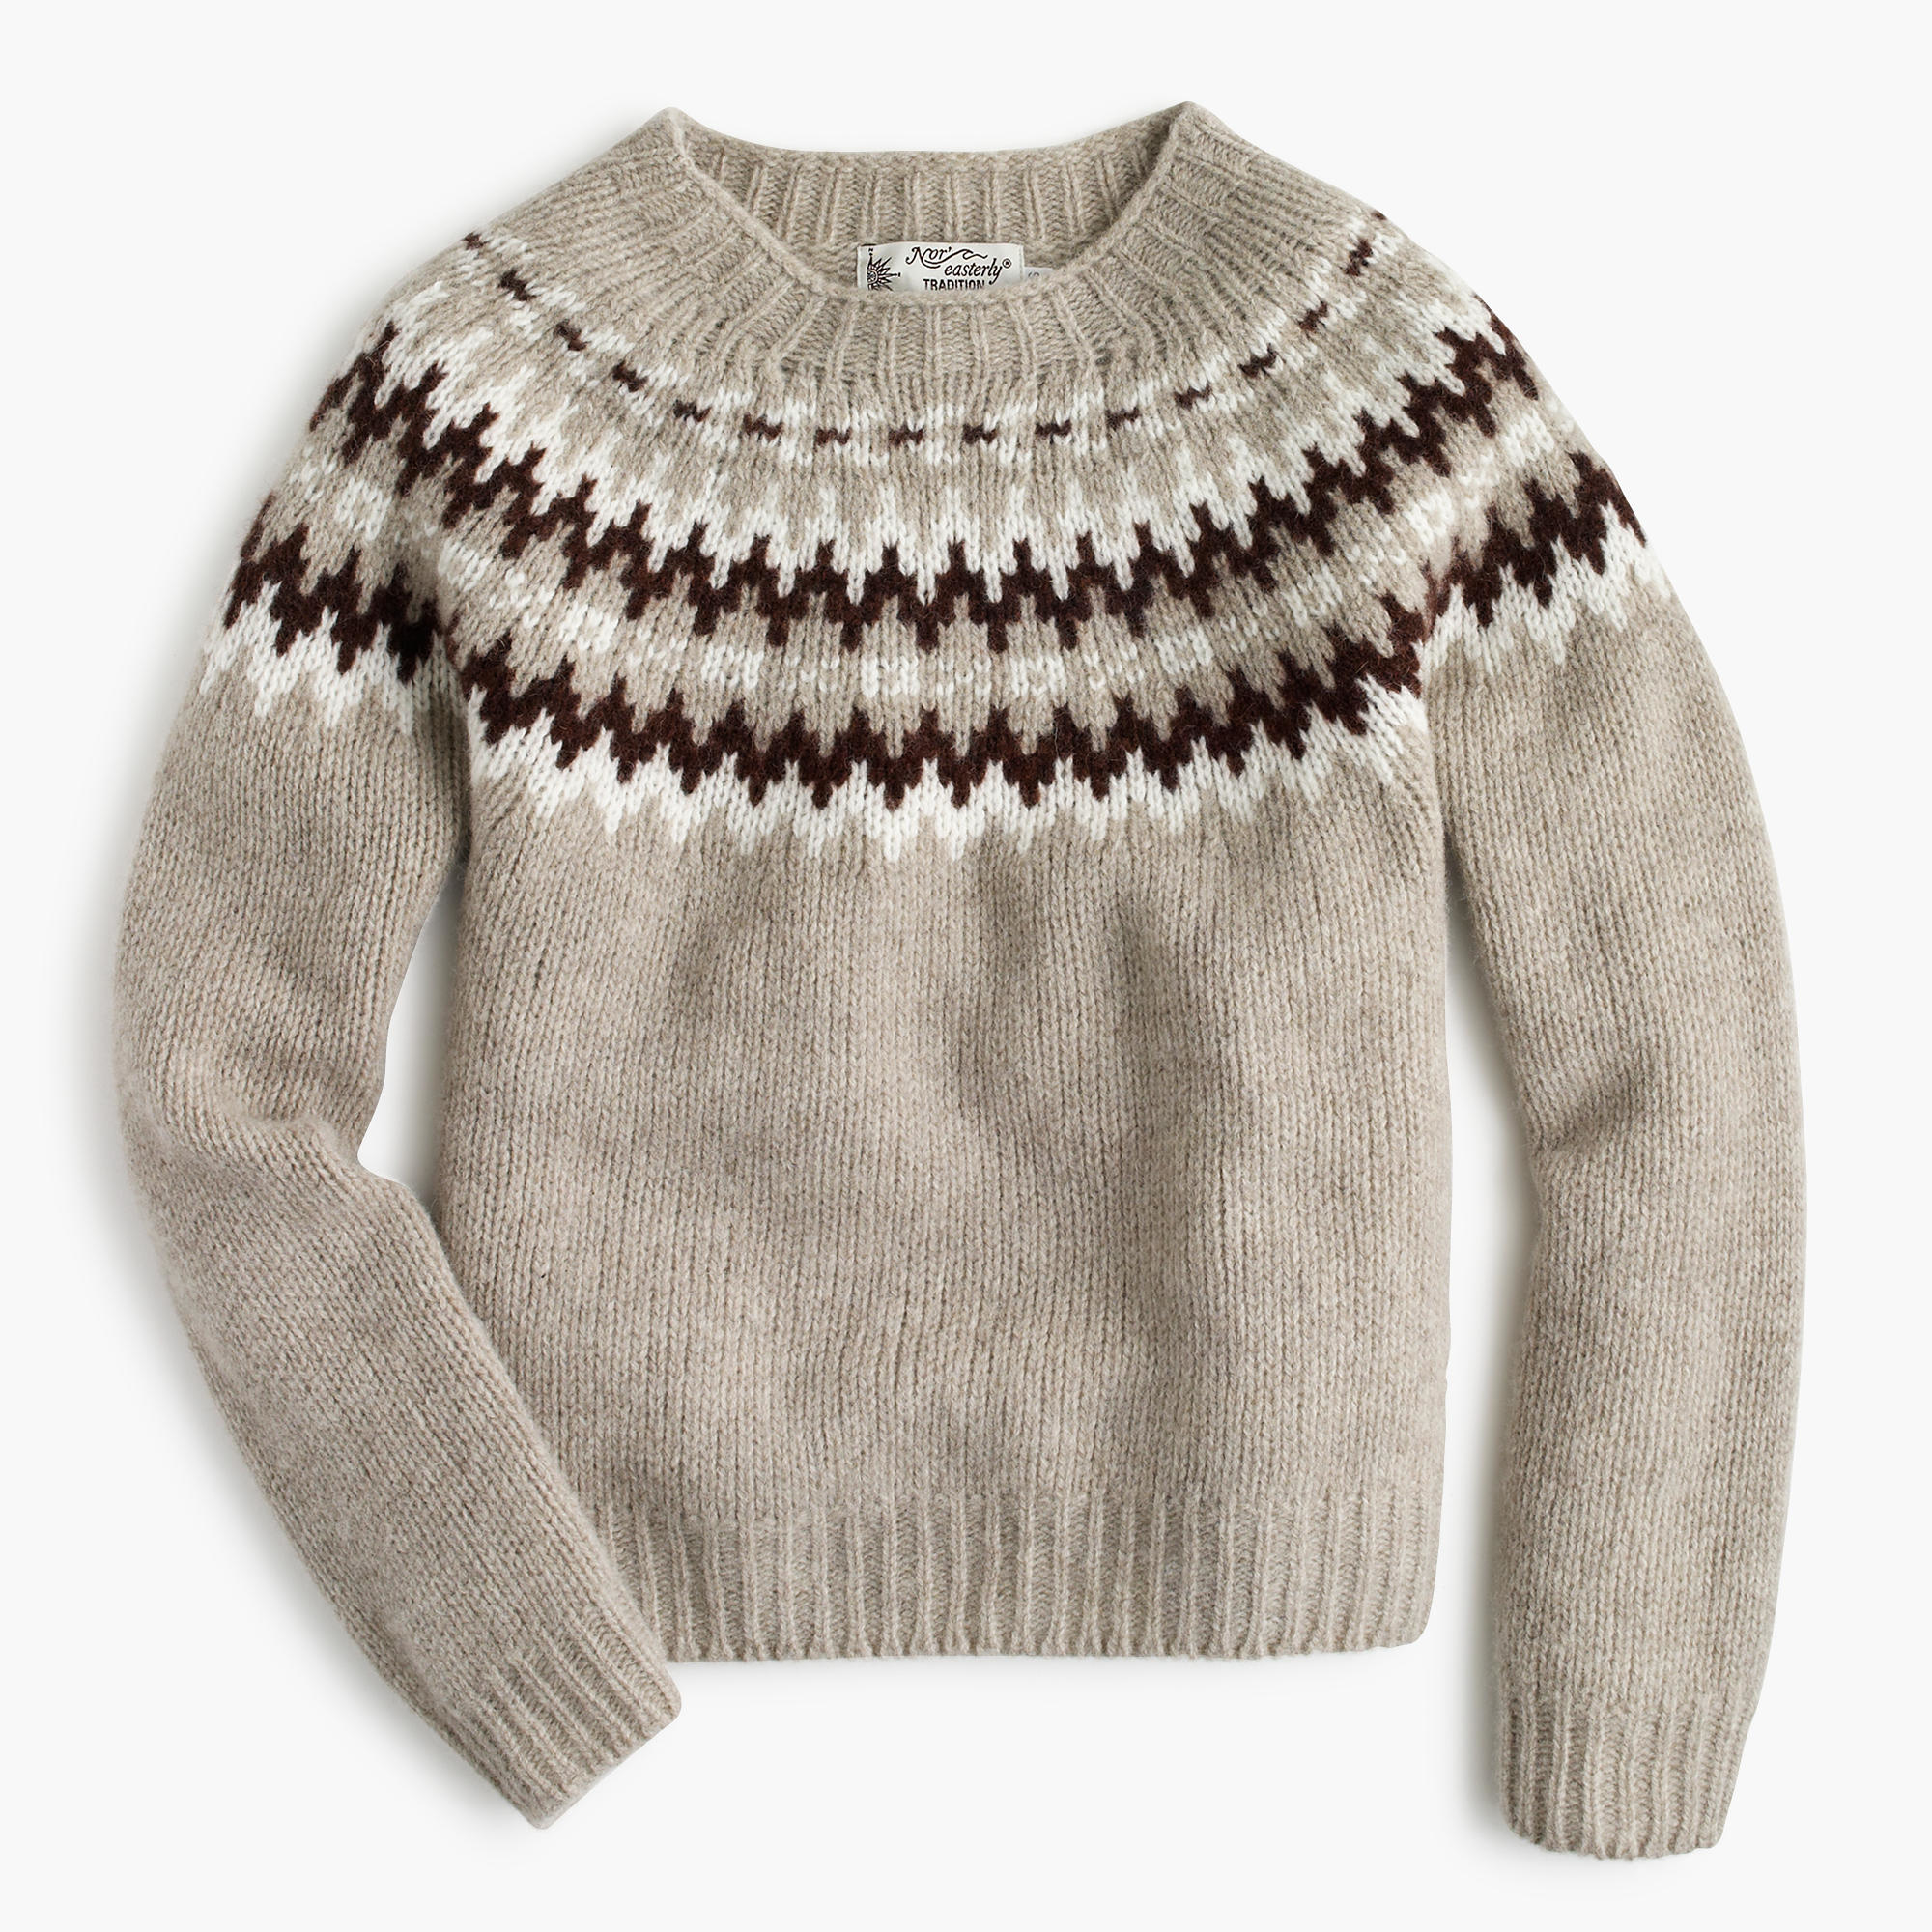 J.Crew Harley Of Scotland Nor easterly Sweater in Natural - Lyst 330abd19e